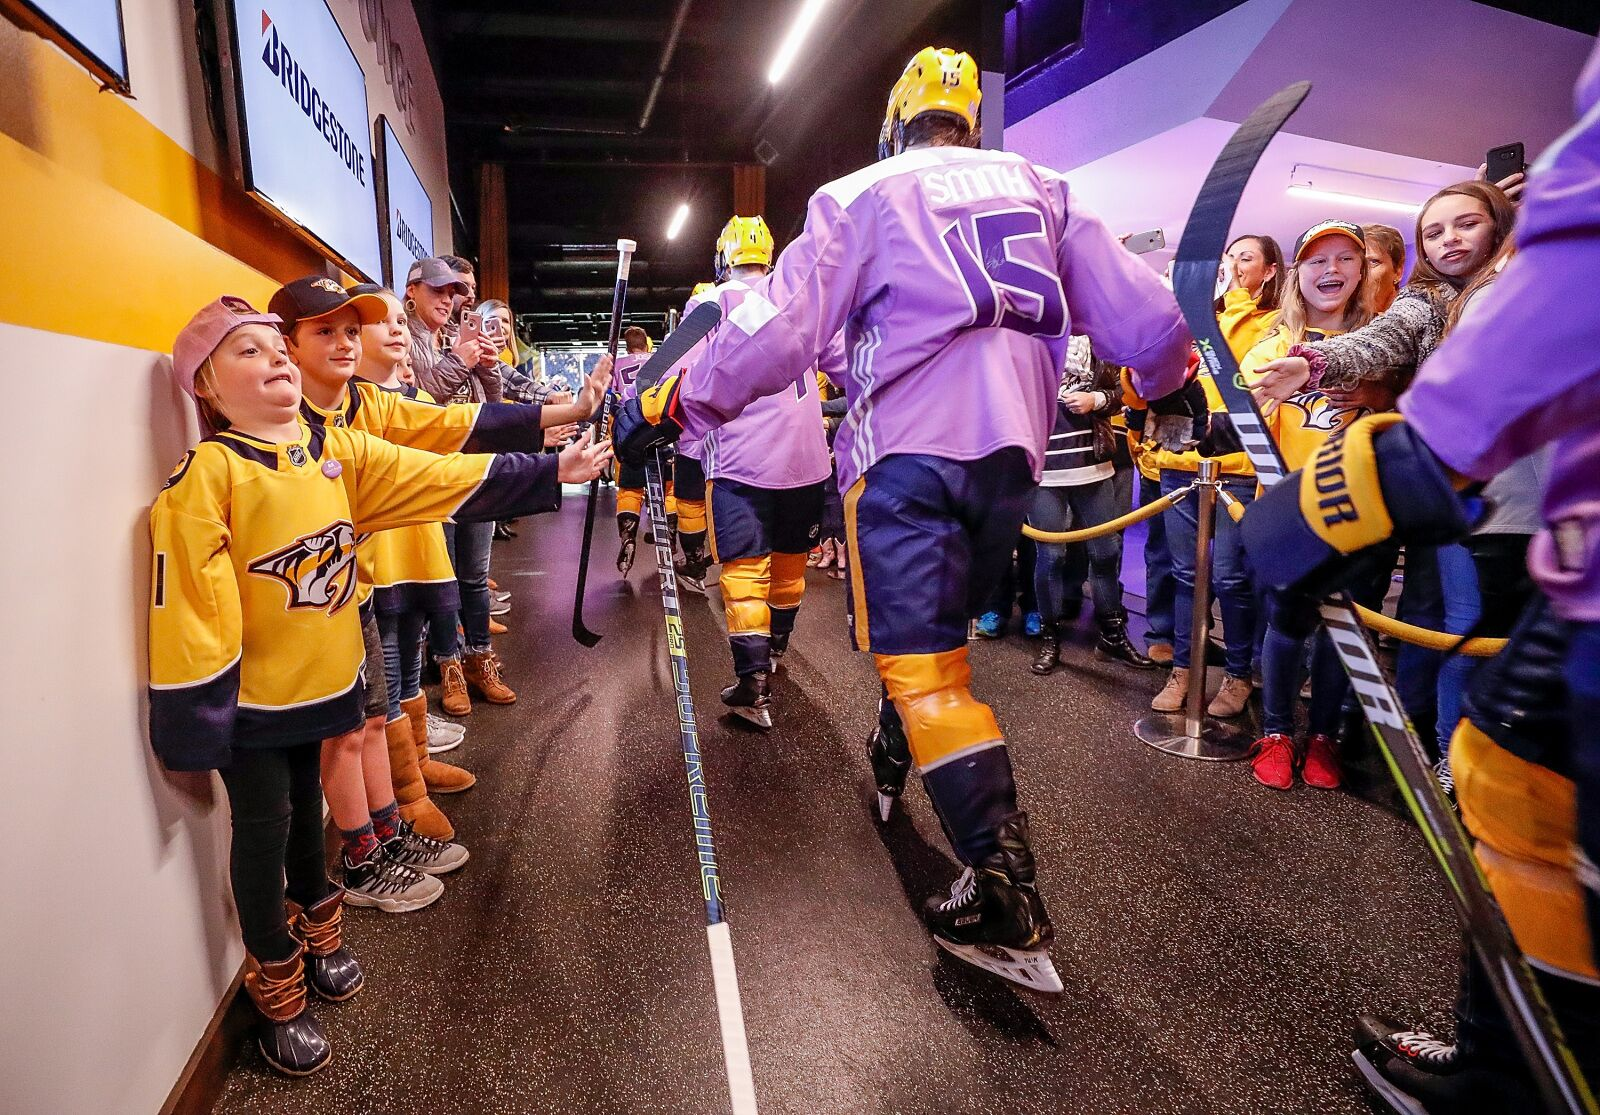 outlet store b92d1 3c18c Nashville Predators: Dear NHL, thank you for fighting cancer